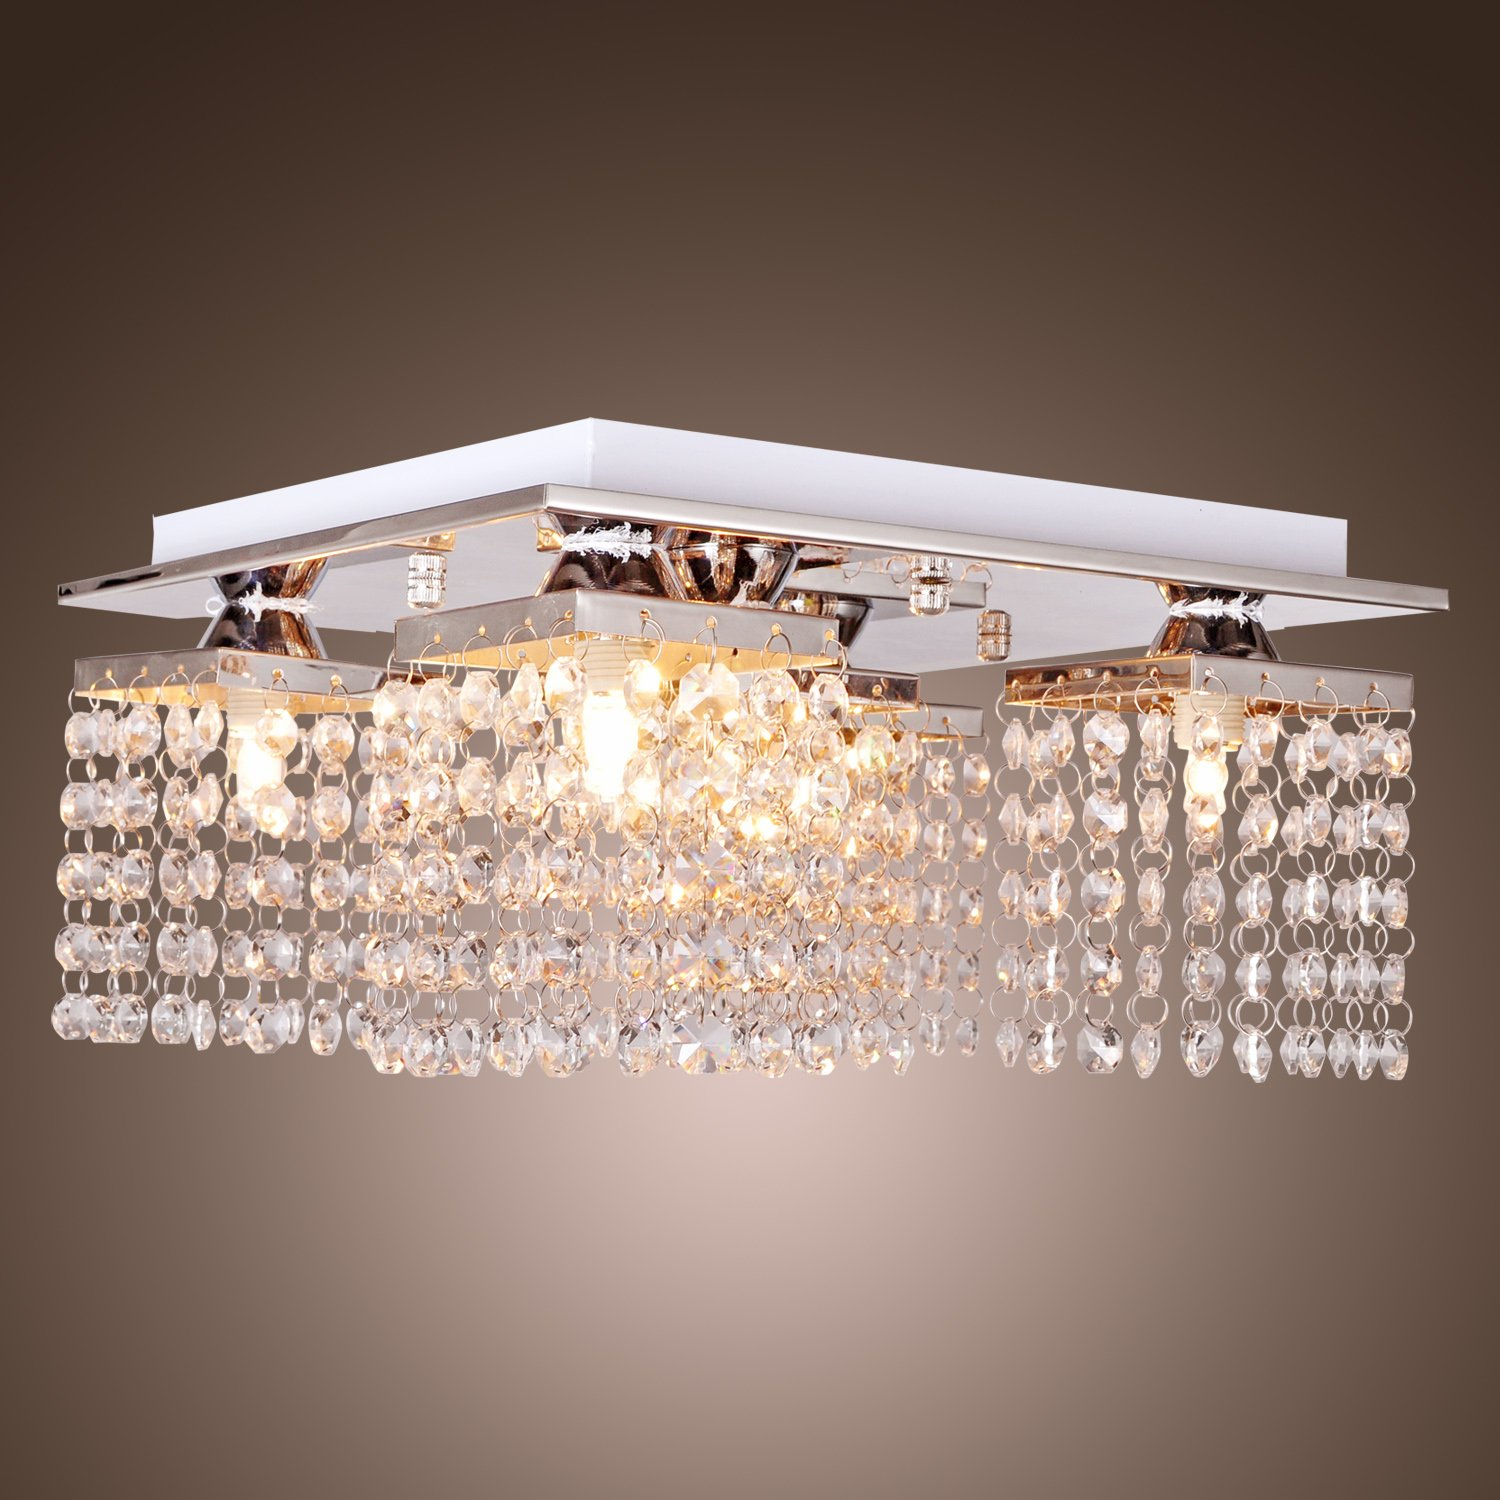 LightInTheBox Crystal Ceiling Light with 5 lights Electroplated Finish, Modern Flush Mount Ceiling Lights Fixture for Hallway, Bedroom, Living Room with Bulb Included by LightInTheBox